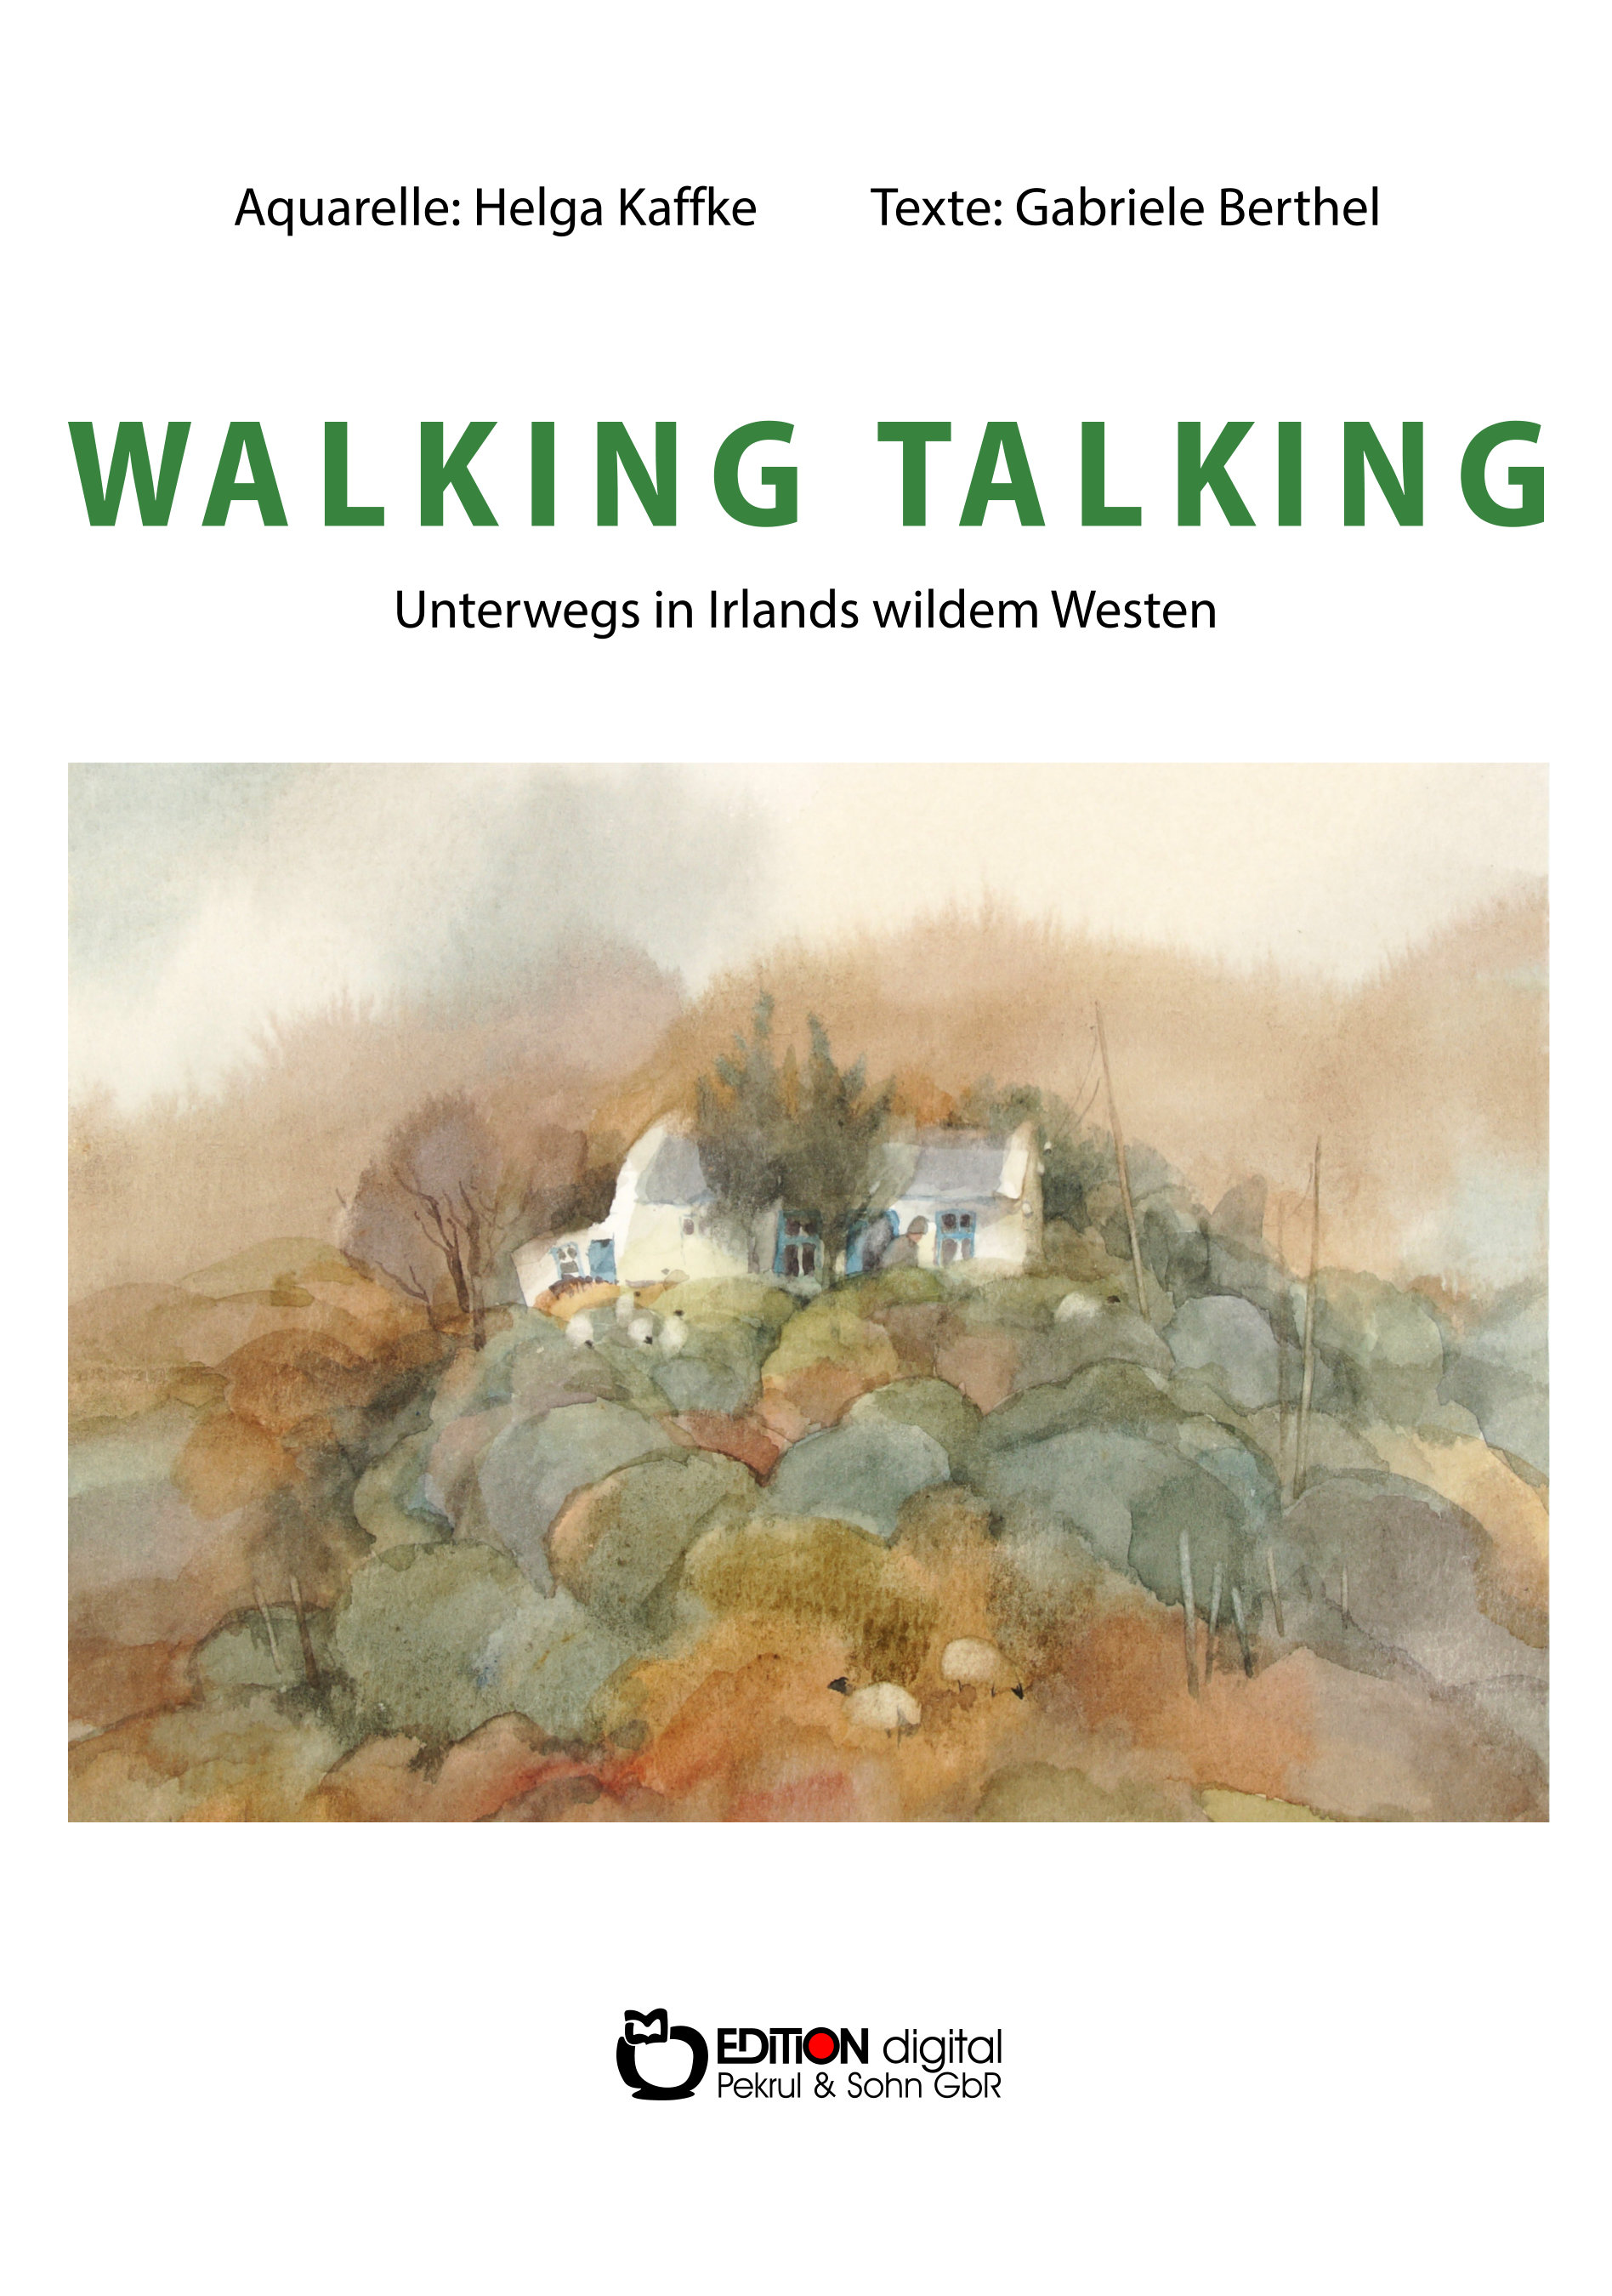 WALKING TALKING. Unterwegs in Irlands wildem Westen von Gabriele Berthel, Helga Kaffke (Illustrator)